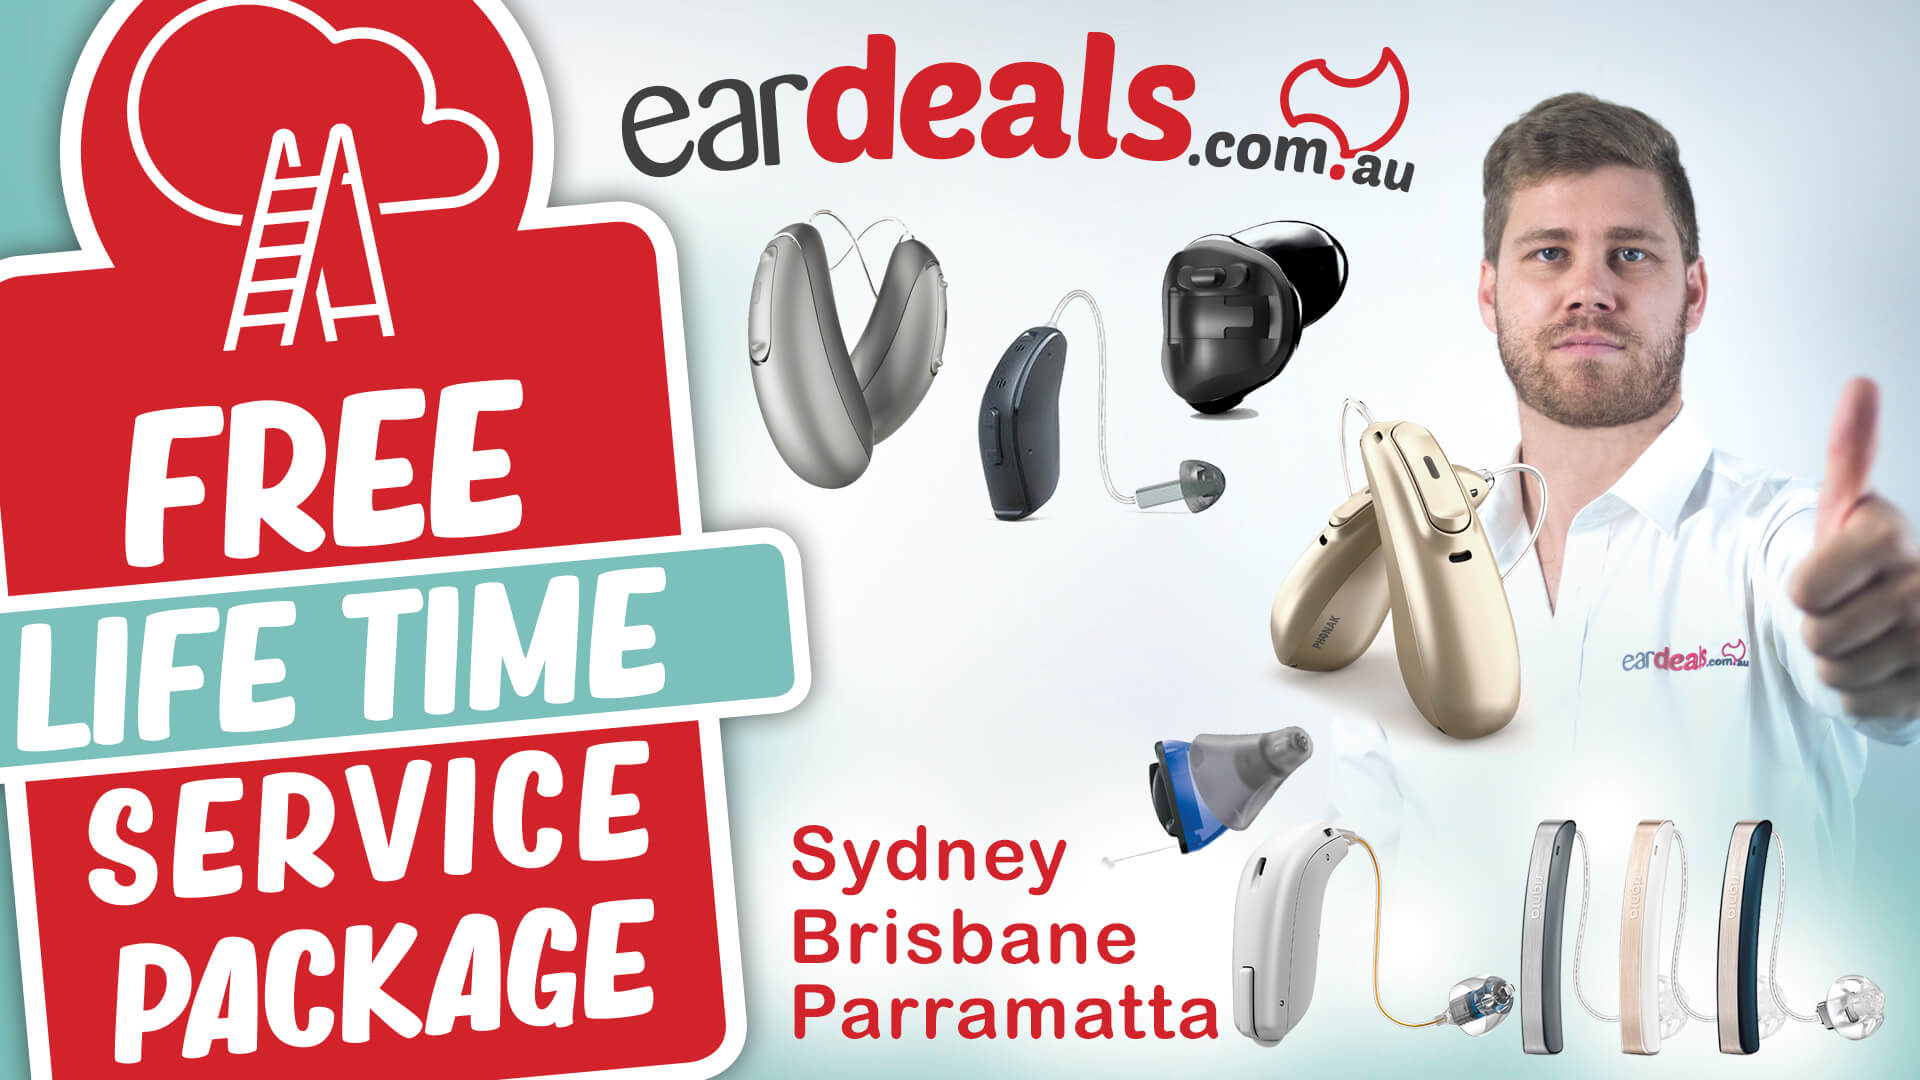 Hearing aid prices for Brisbane, Sydney and Parramatta. Prices for Phonak, Oticon, Signia, Starkey, Unitron and more!